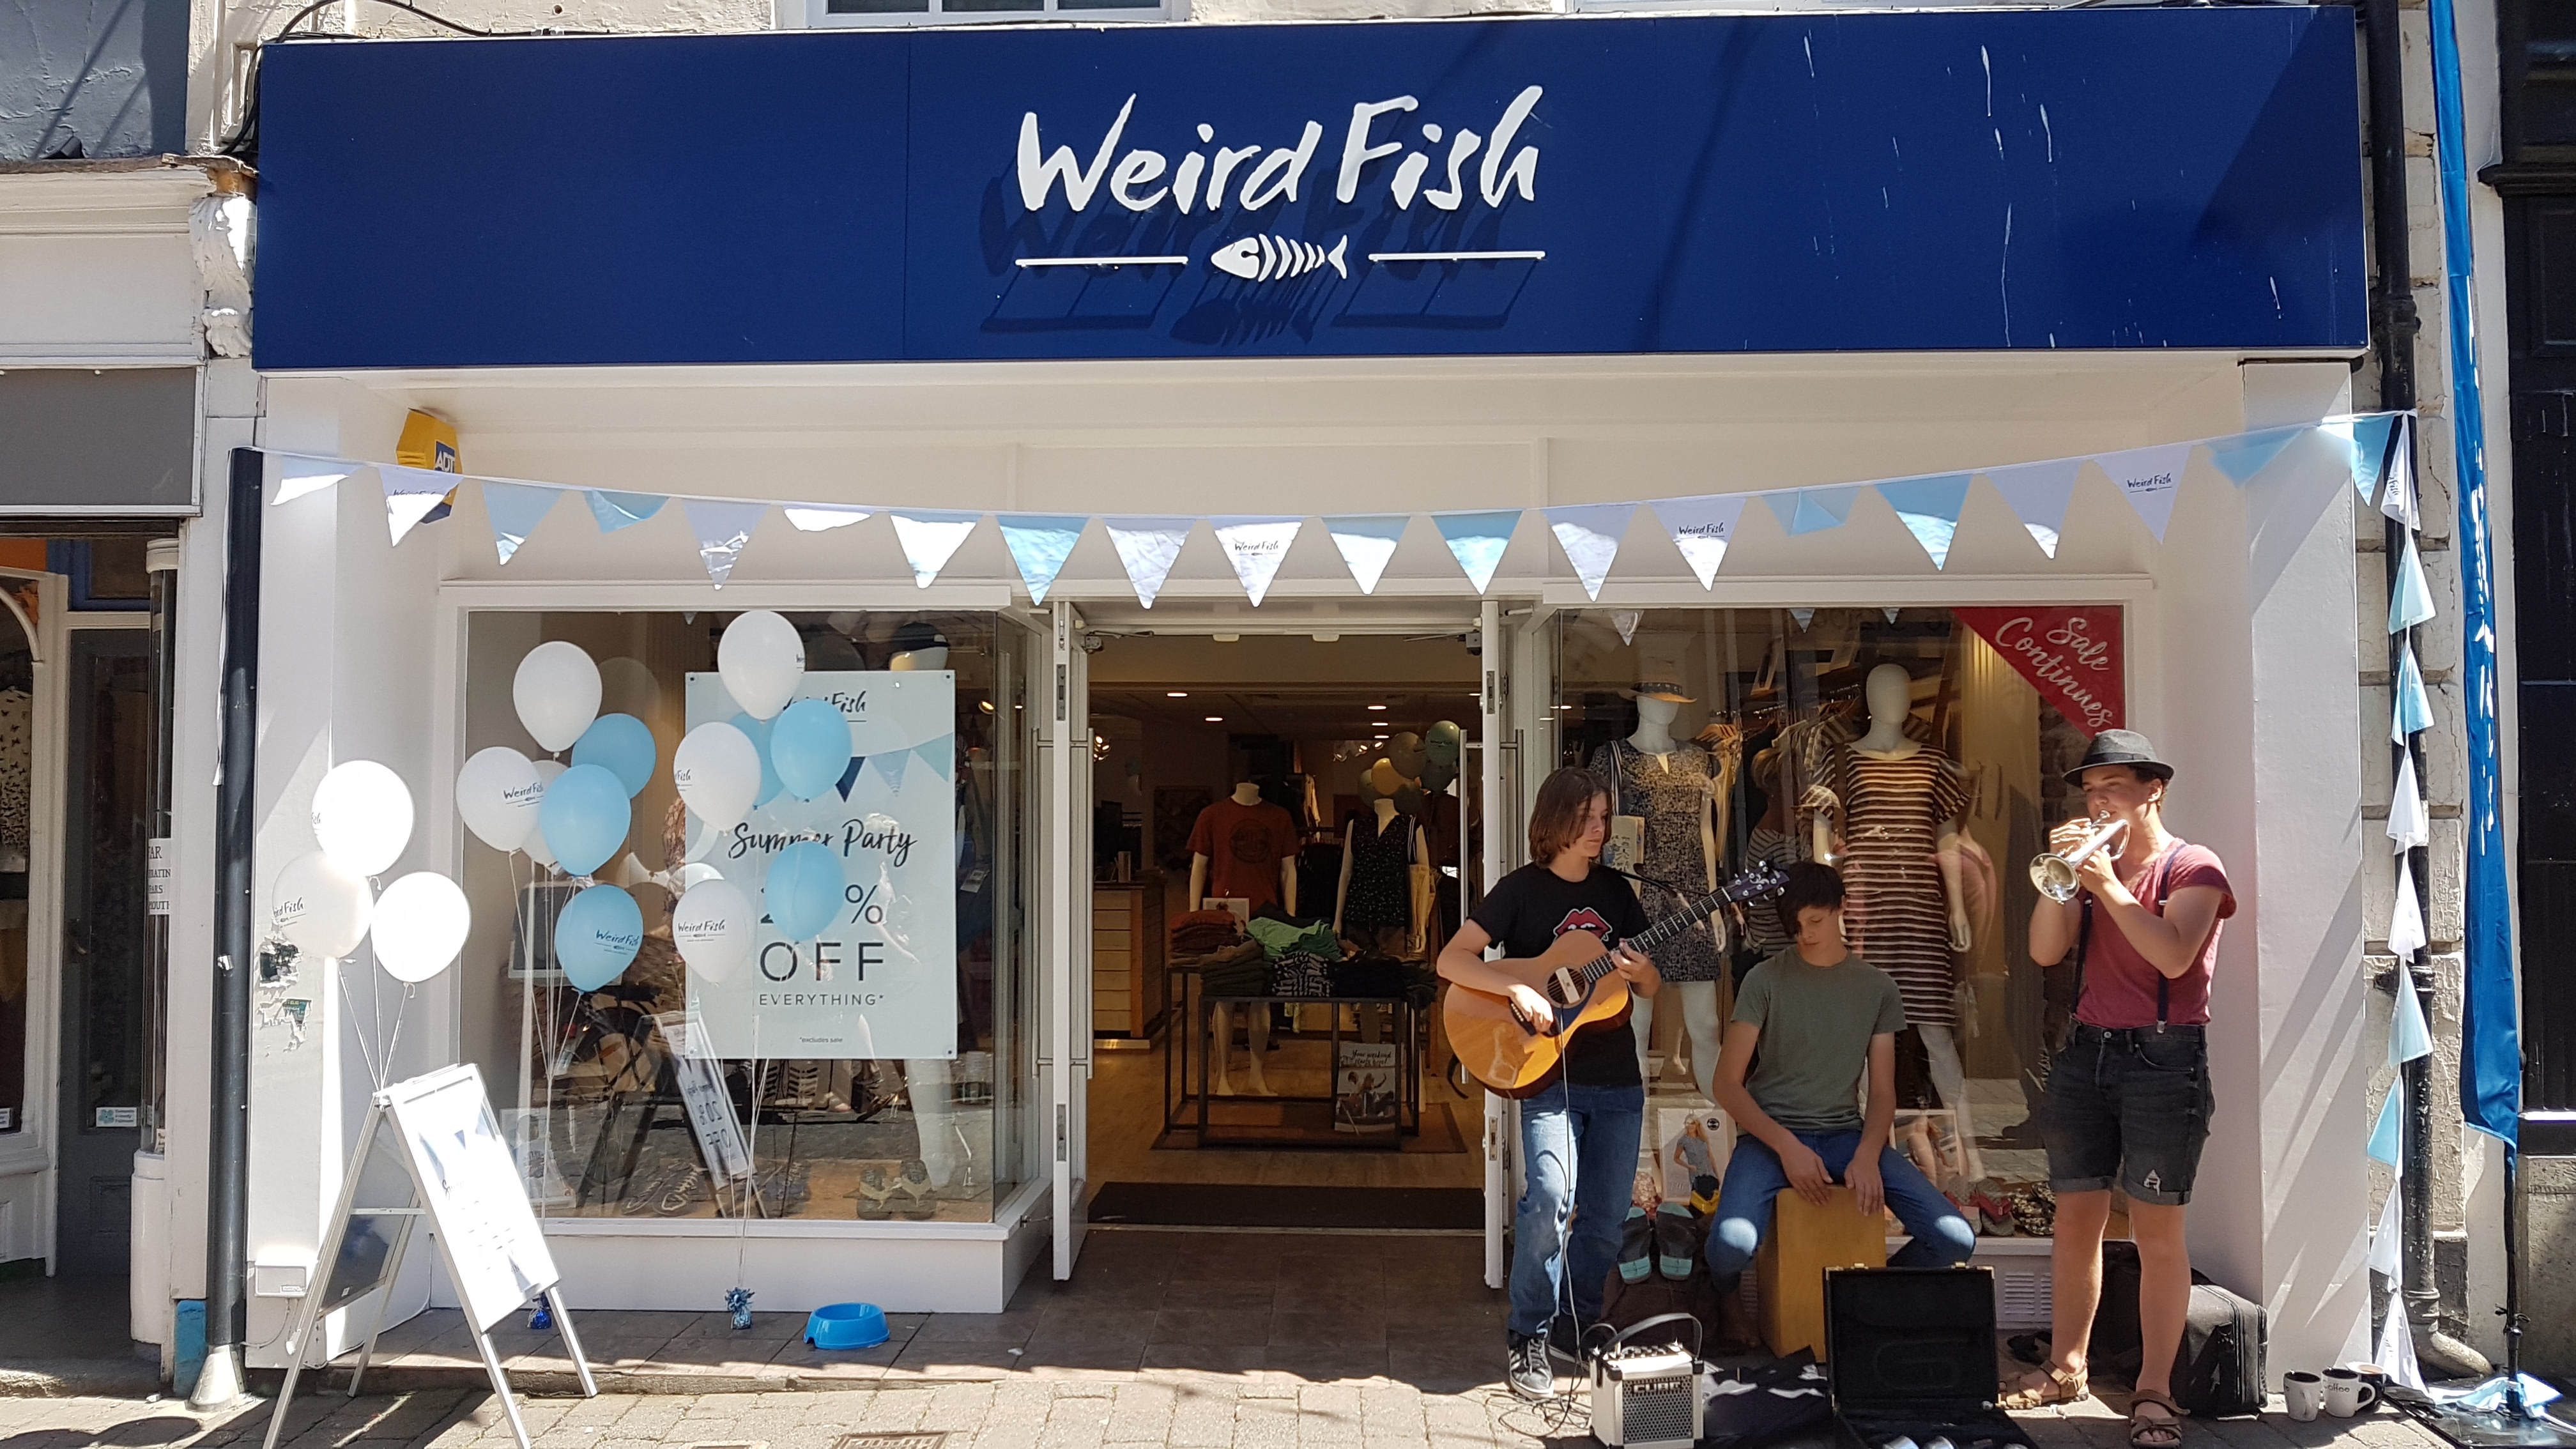 Weird Fish 'of-fish-ially' launches its Falmouth store with a Summer Party